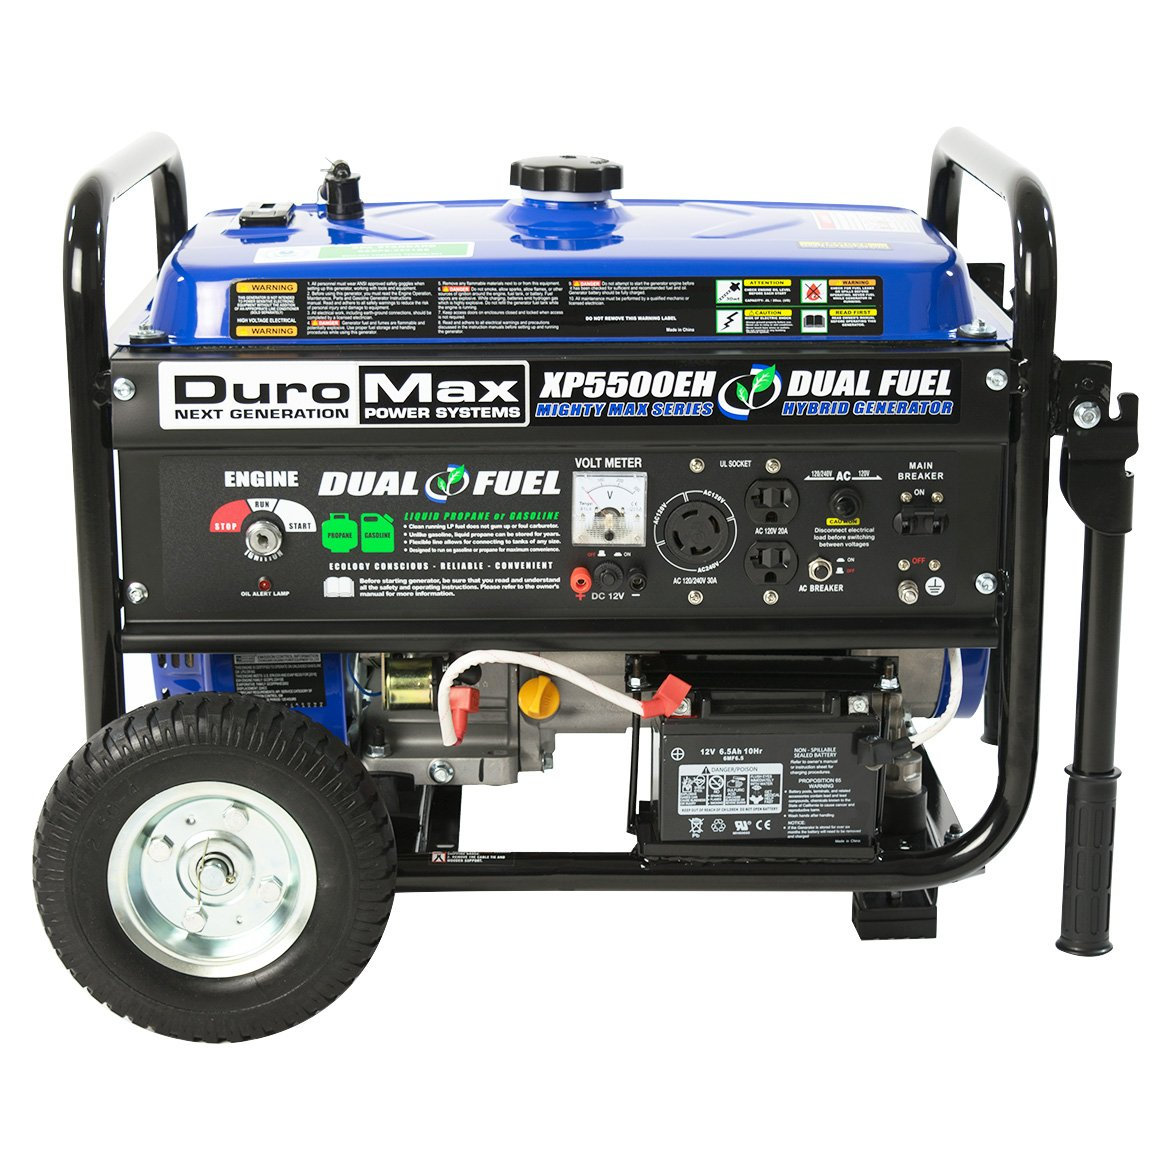 DuroMax XP5500EH Gas/Propane Powered Dual Fuel Portable